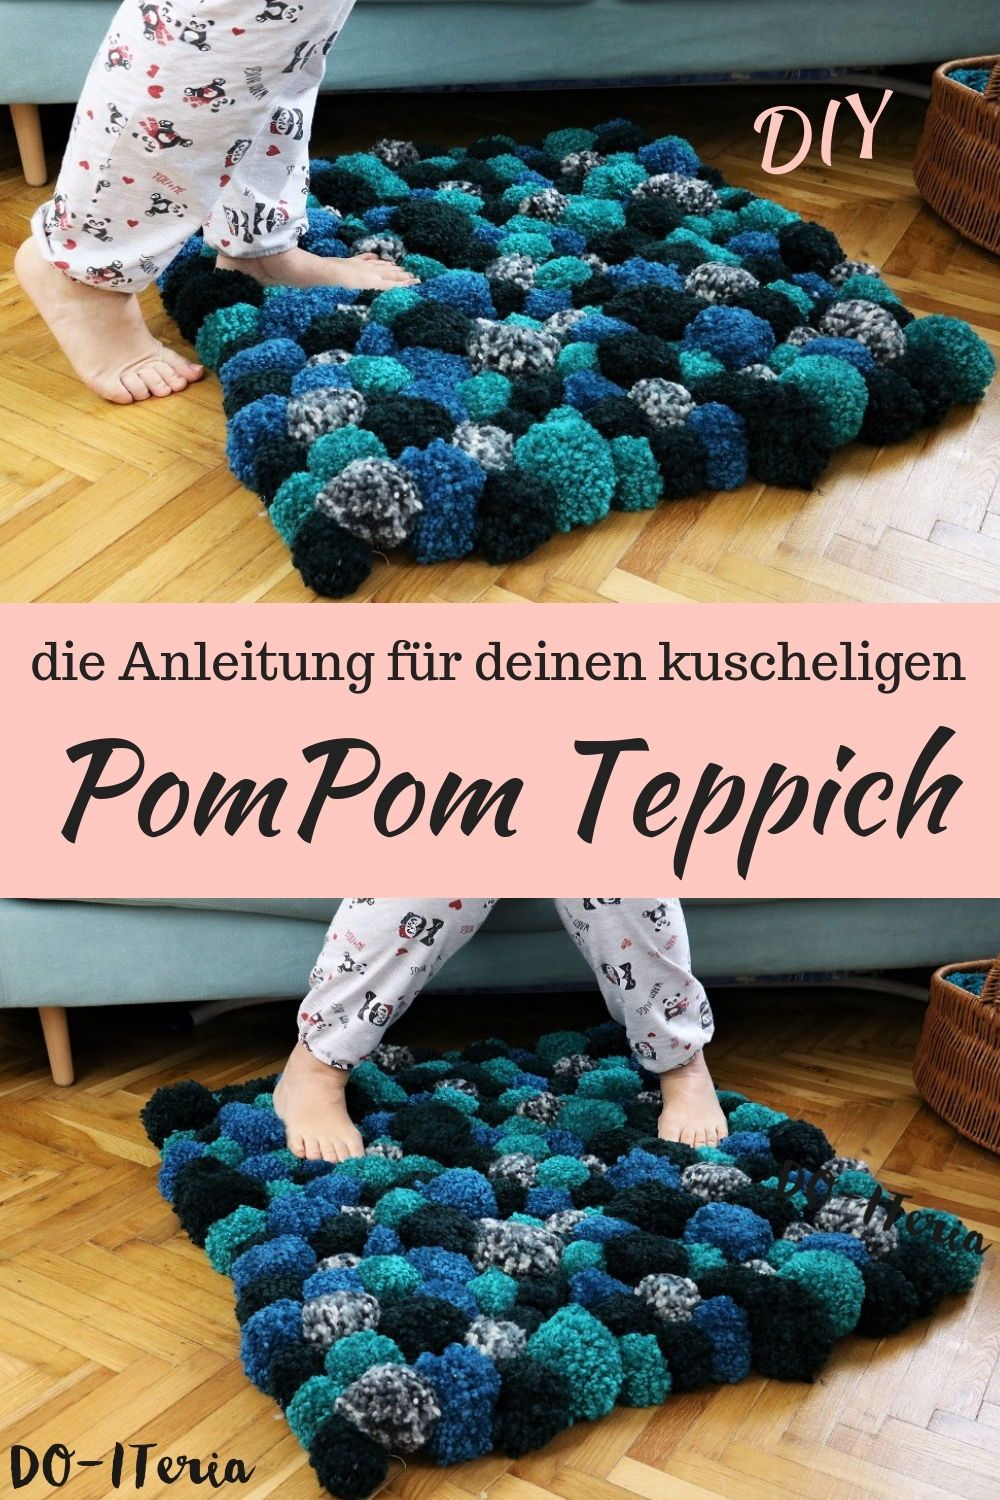 Photo of cozy DIY PomPom carpet | DO-ITeria